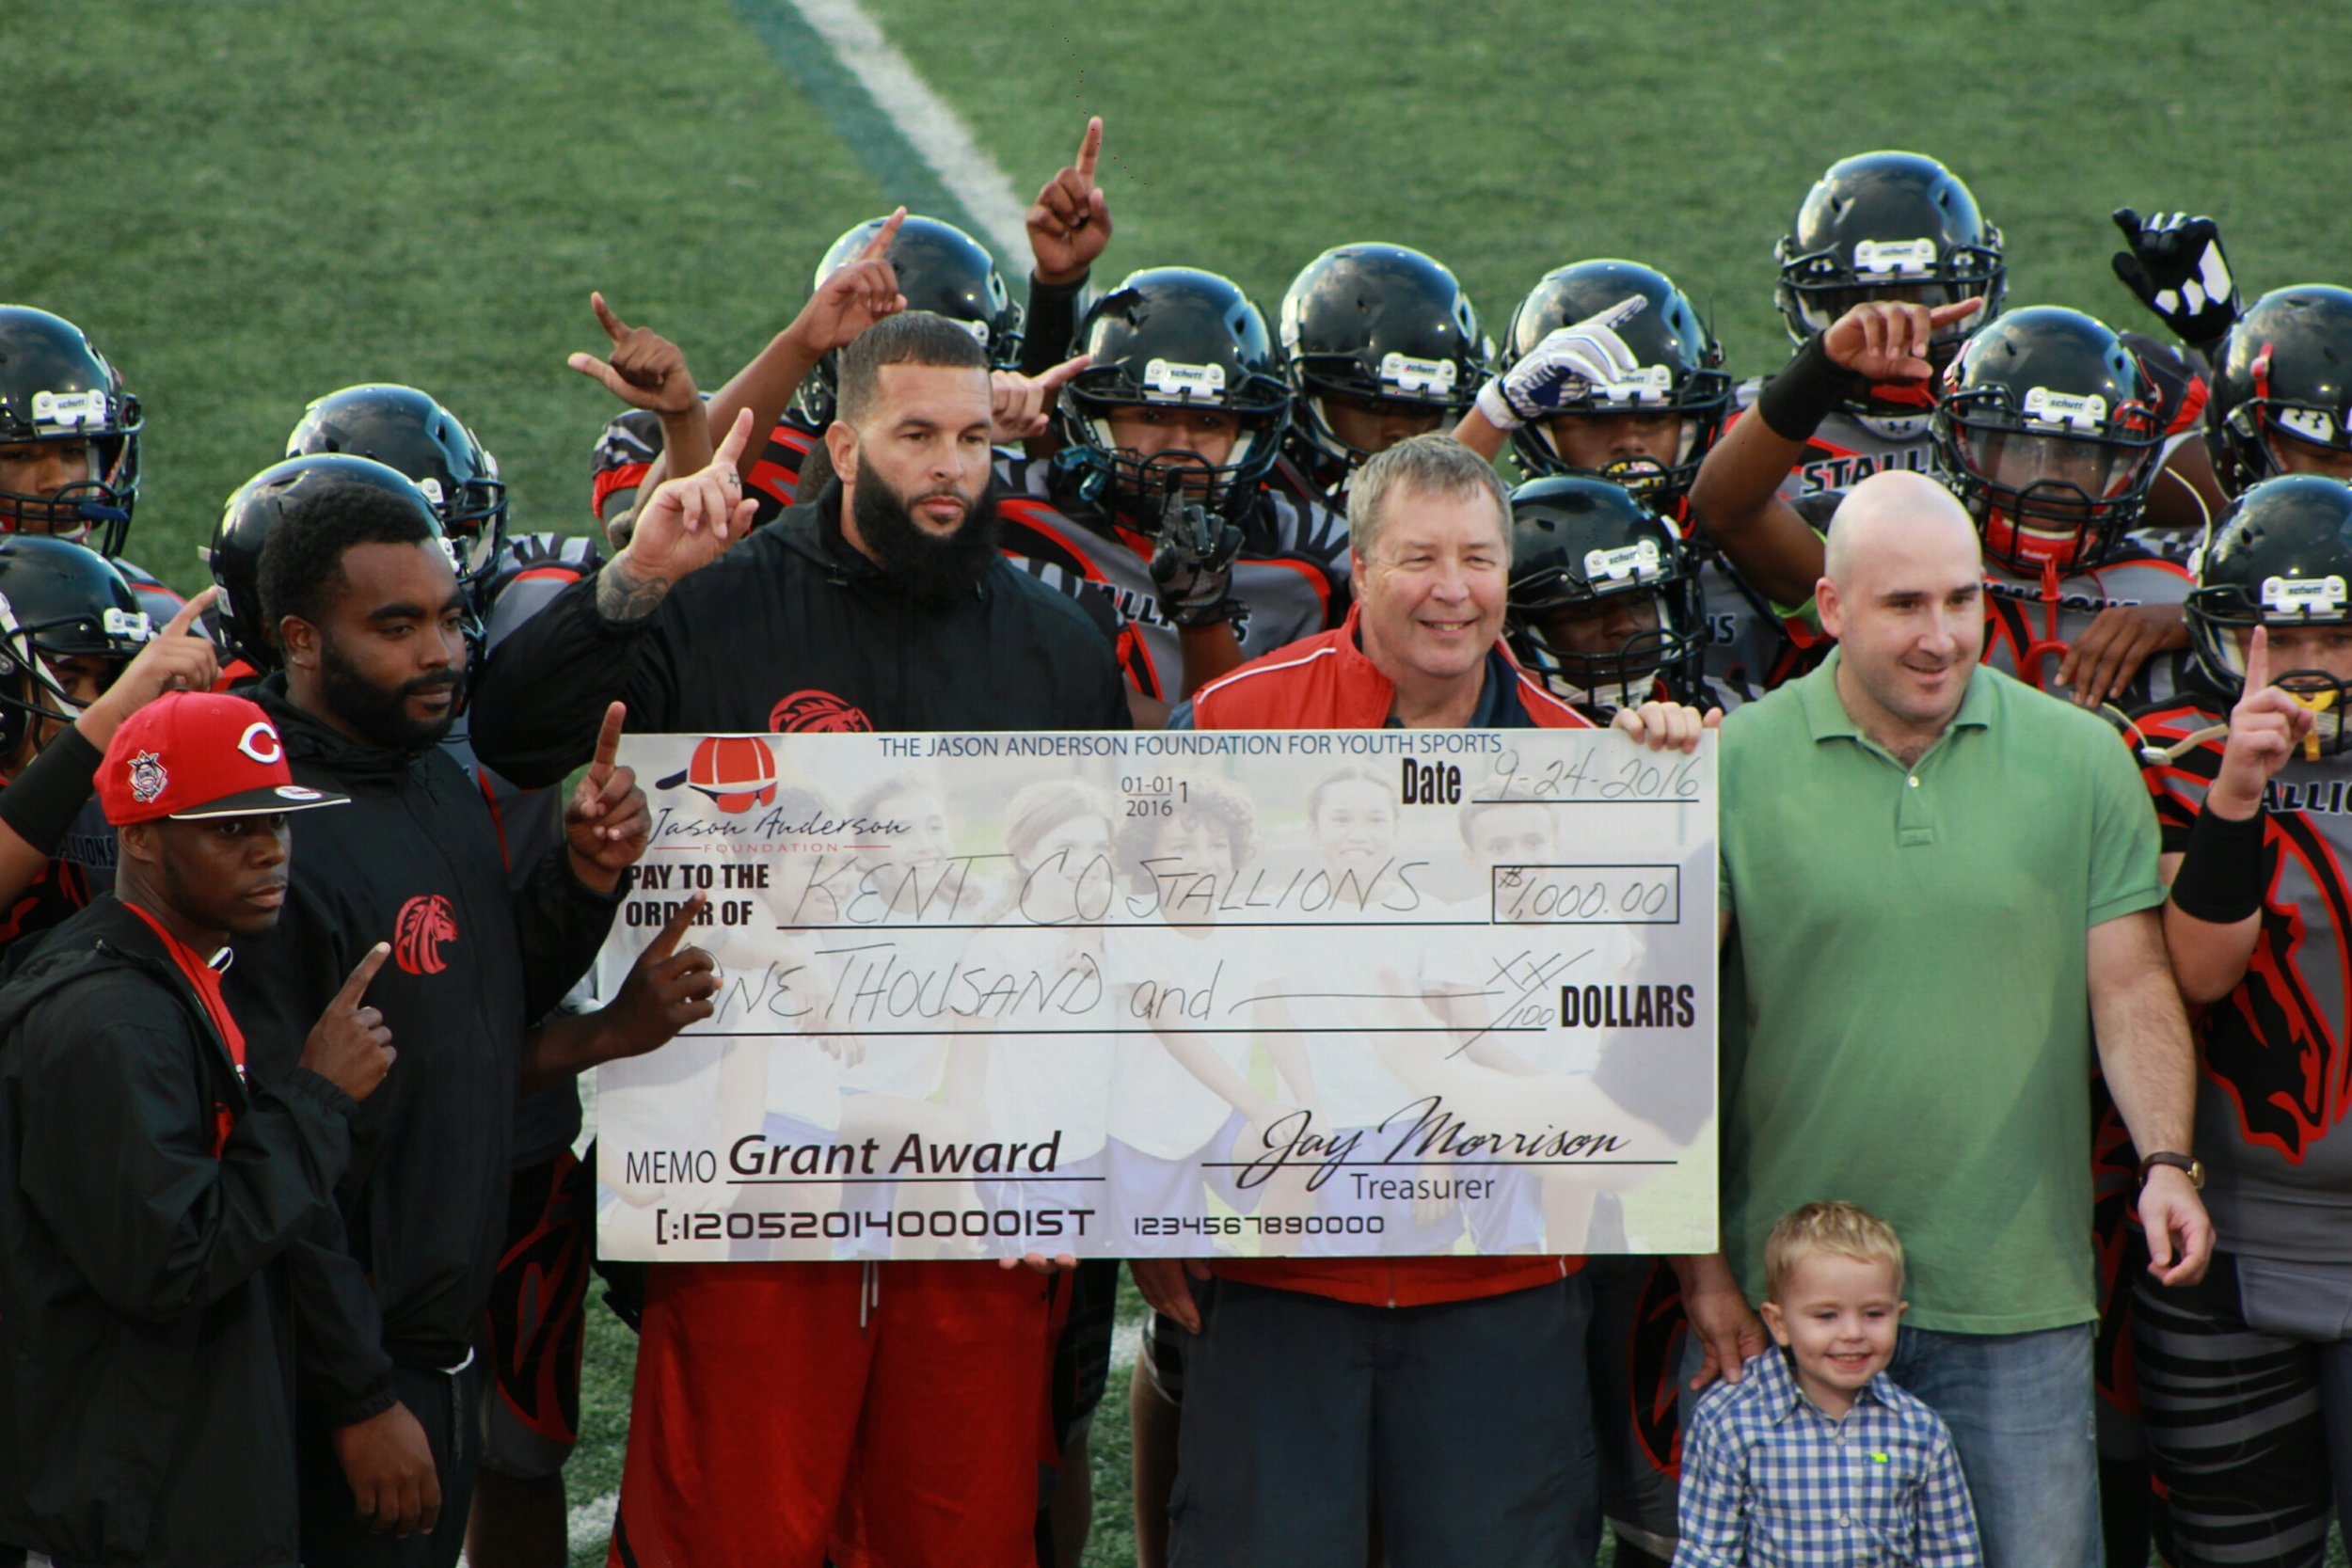 Marc Anderson, President of the foundation,  Andrew Schwab, Board Chair and Jason's son Ryan,  present a $1,000 check to the Kent County Stallions prior to a September 2016 game.